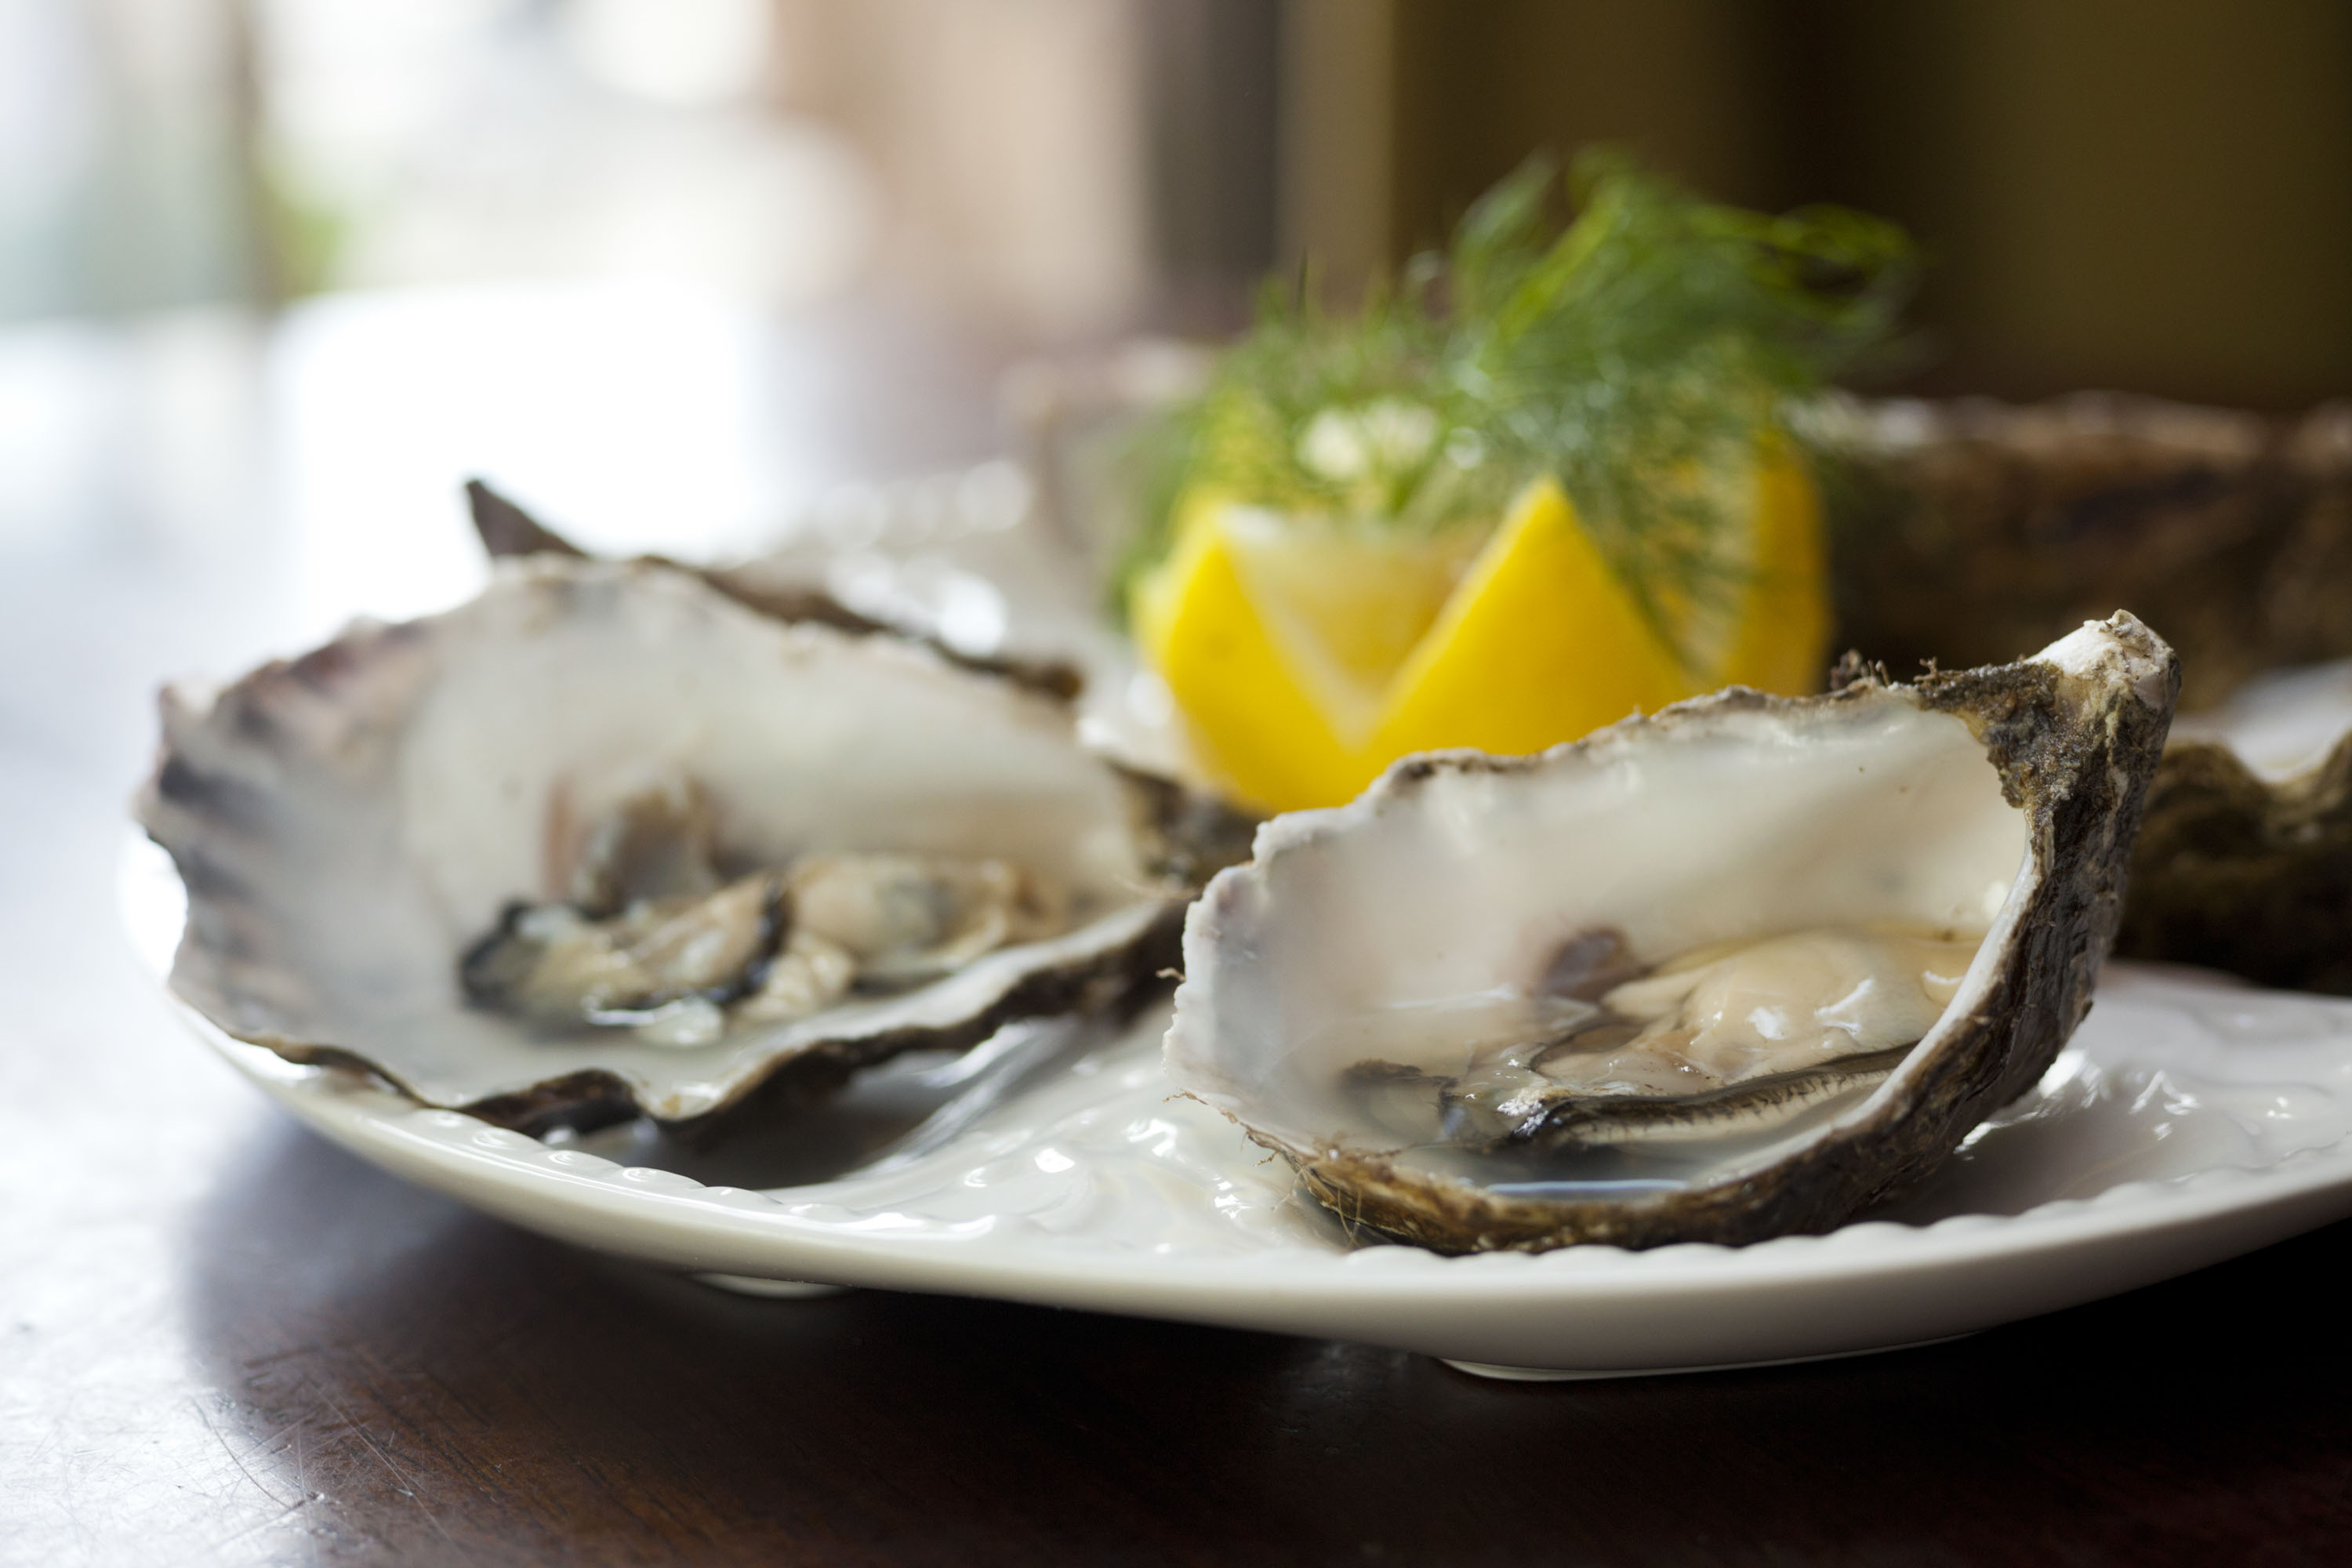 Oysters_at_The_Tavern_6976.jpg